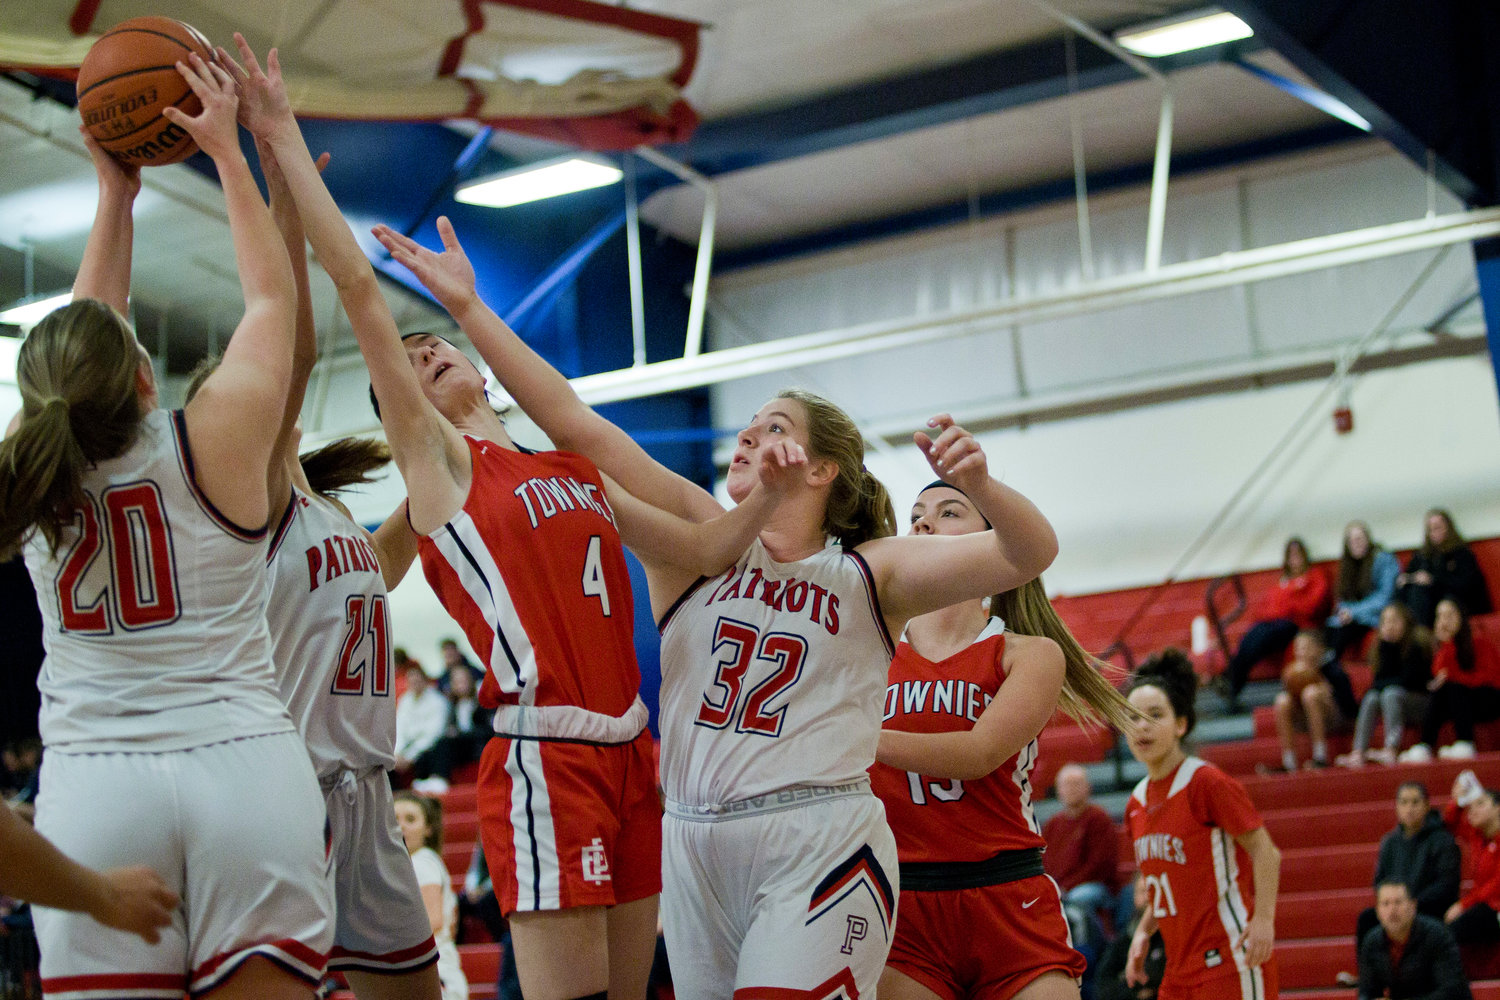 Gabby Schneck feeds the rebound toward teammate Kendall Ferris during a home game against East Providence last Thursday.